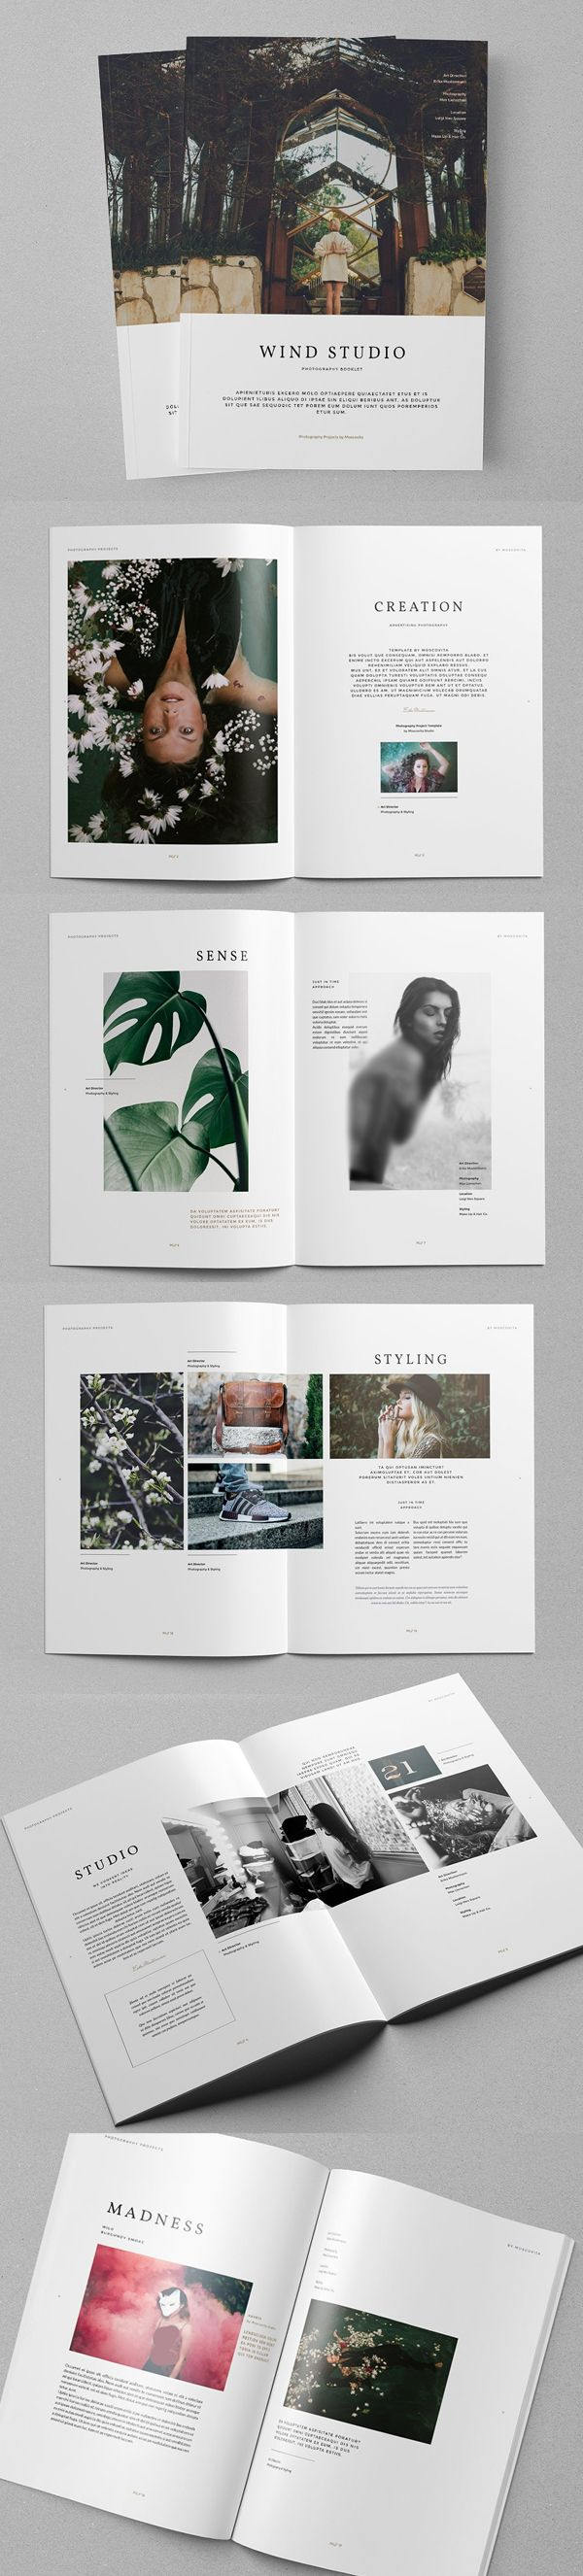 I love the photography and type layout for this brochure, becasue both the type and the photos having been given an equal sense of importance.